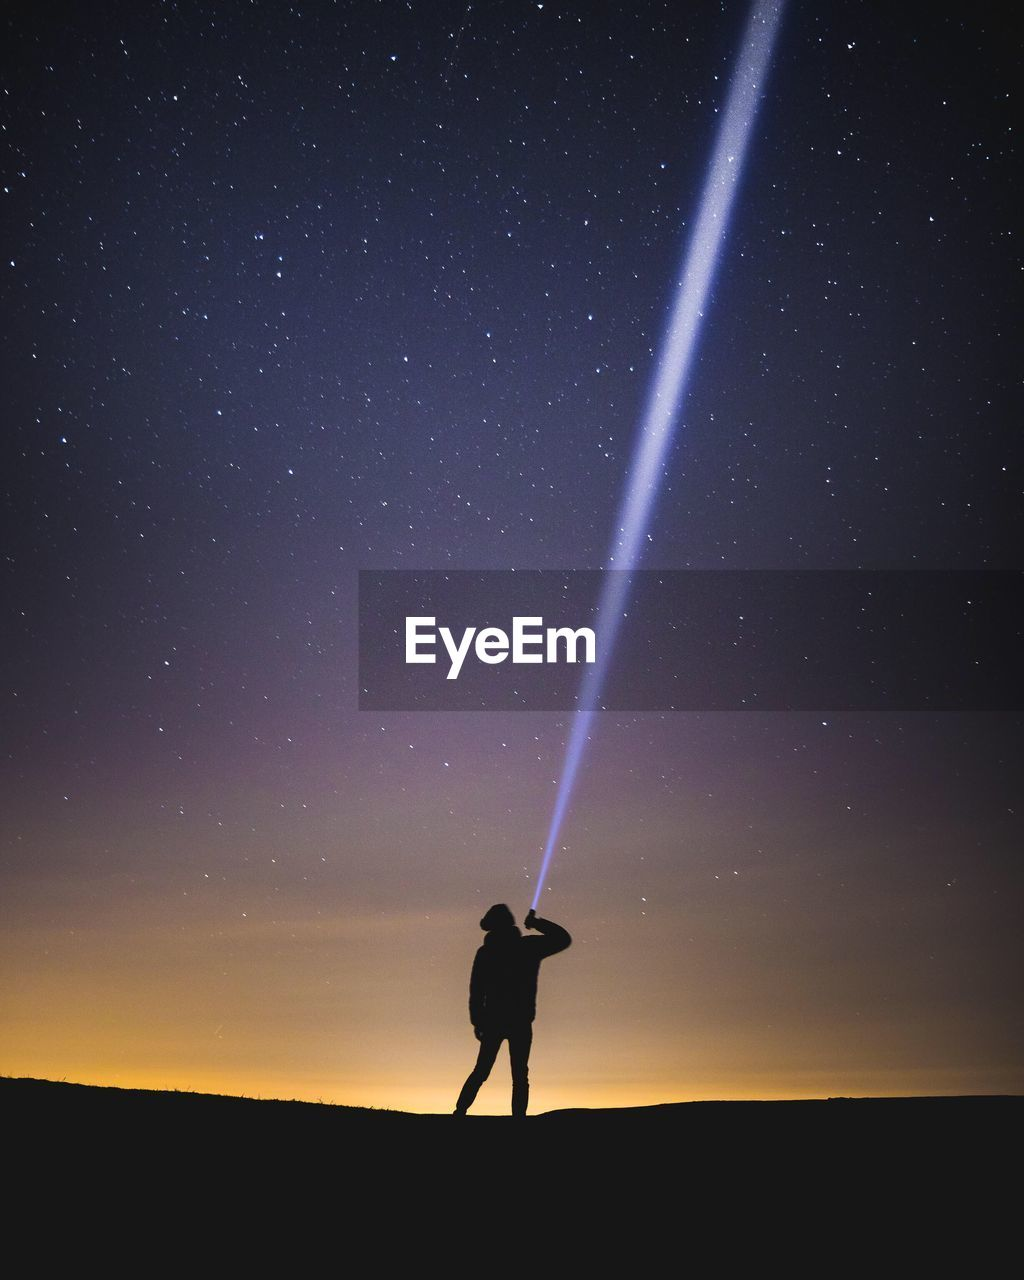 Silhouette Man With Illuminated Flashlight Against Star Field